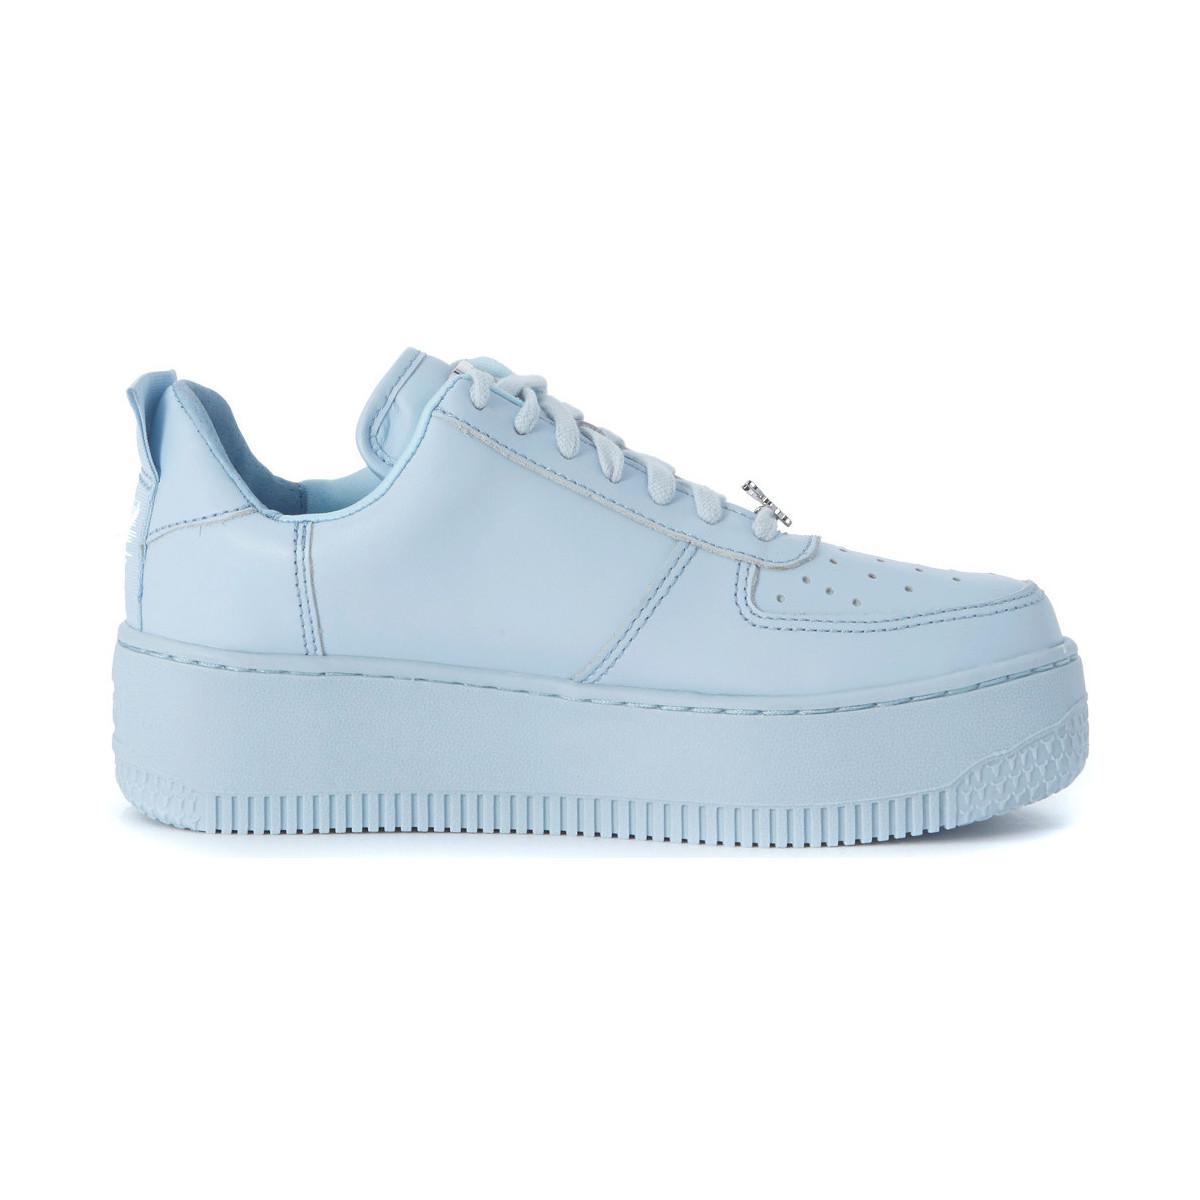 Windsor Smith Racerr Baby Light-bue Snaker With Platform Women's Trainers In Other in Blue